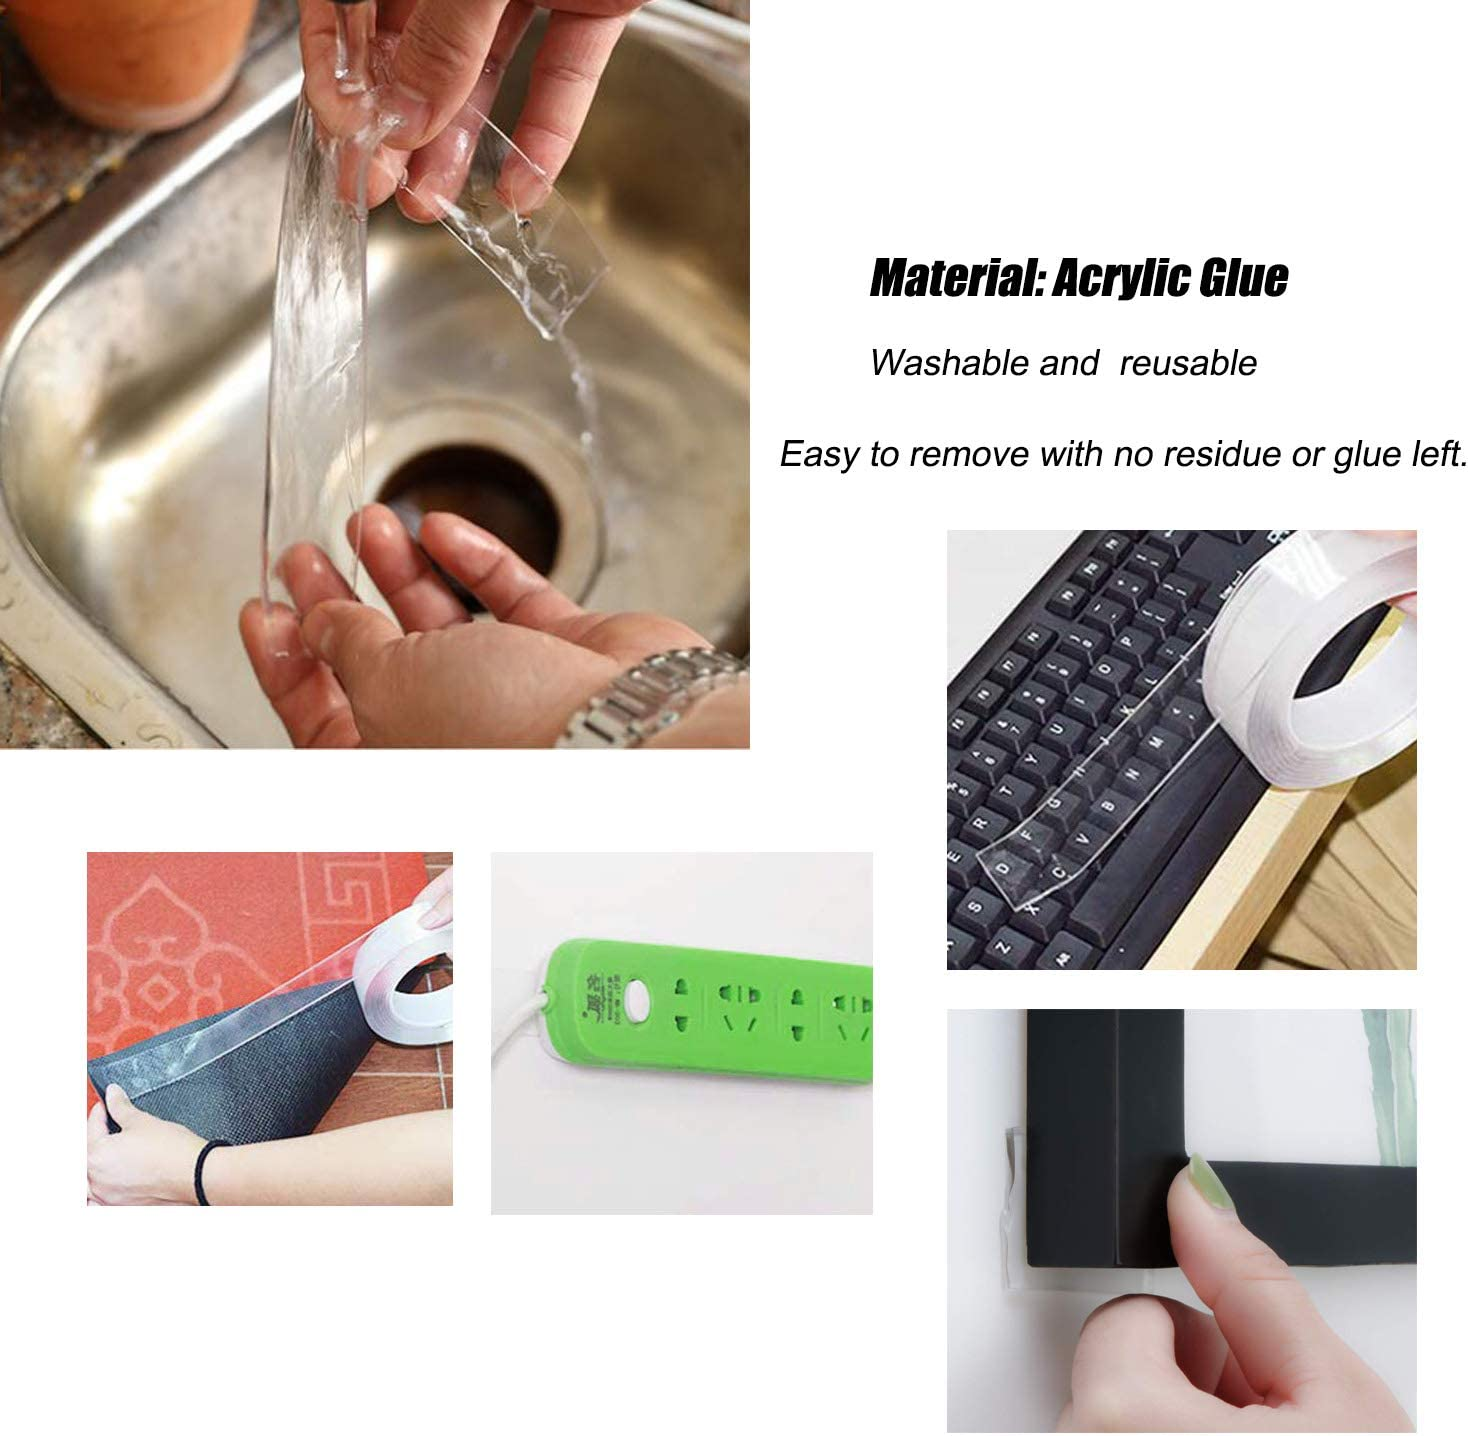 with 2pcs Silicone Pad Anti-Slip Reusable Car Mat for Carpet Rug Key Phone Coin LORITARIA Double Sided Gel Removable Adhesive Tape 2m//6.56ft Long, 2mm Thick Traceless Clear Washable Tape Roll